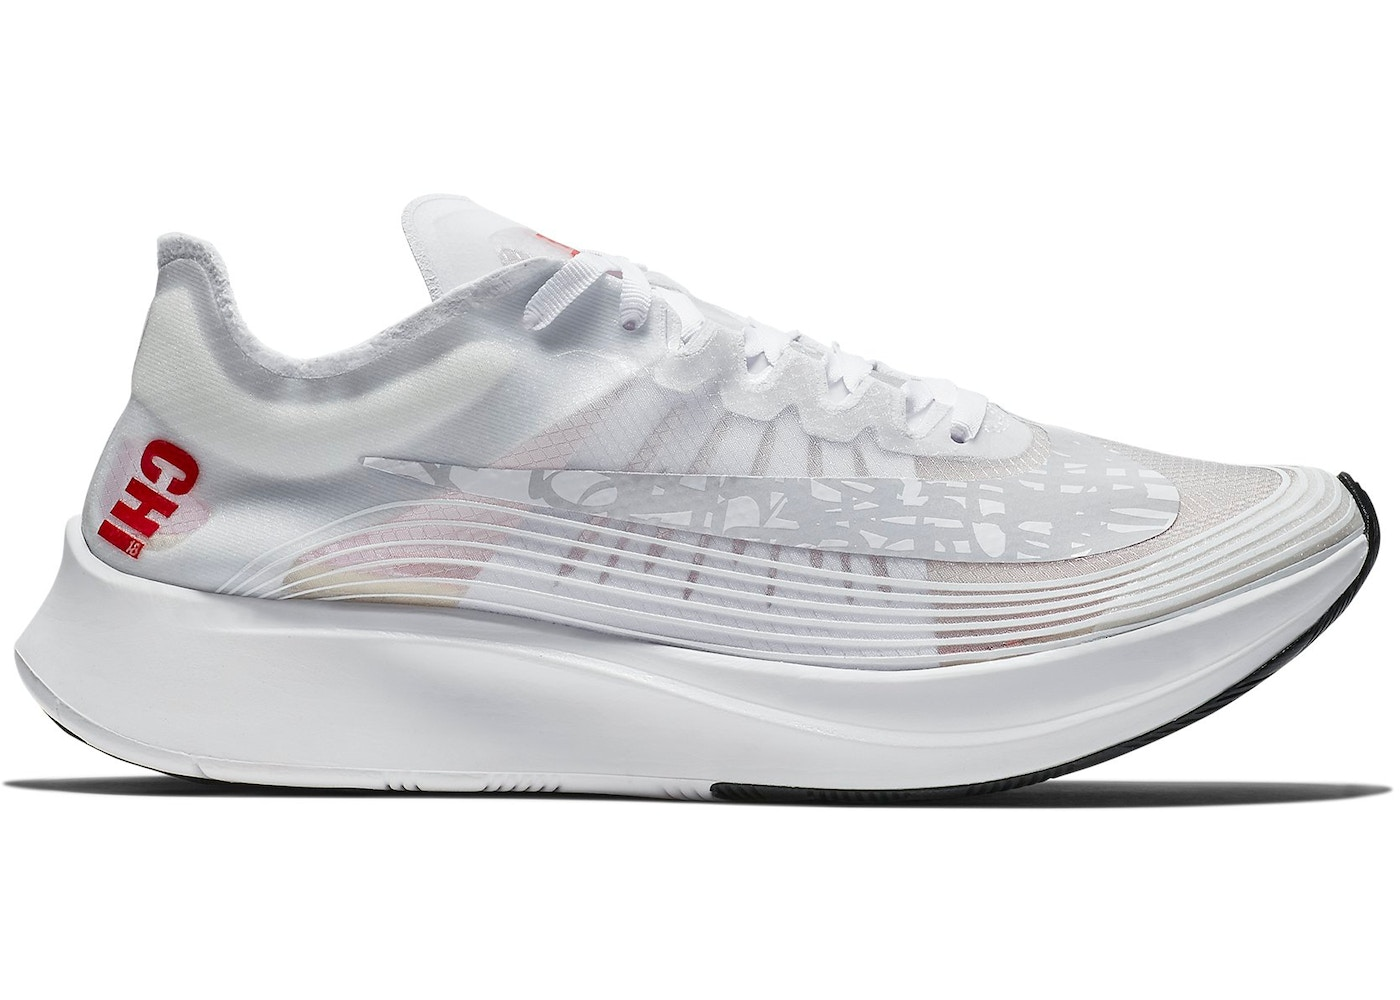 ccae04165421e Nike Zoom Fly Chicago Marathon (2018) - BV1183-100